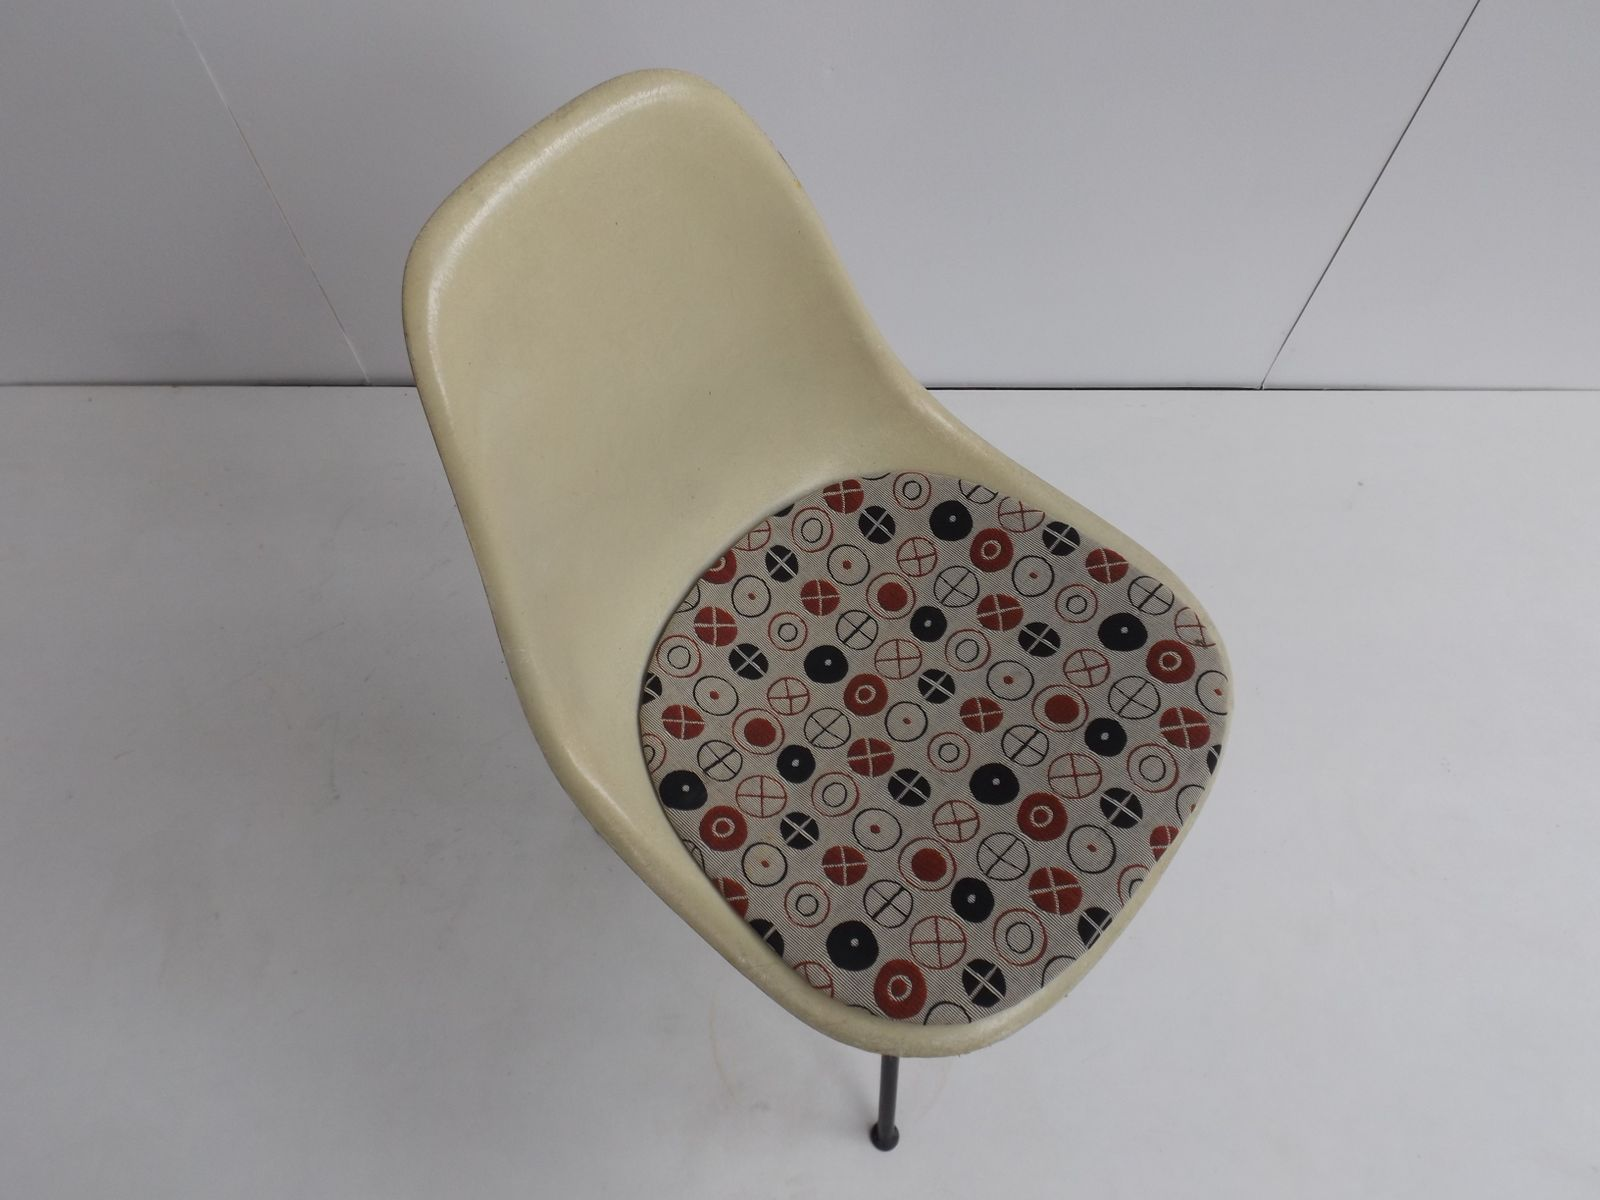 Vintage DSX Fiberglass Side Chair by Charles Ray Eames for